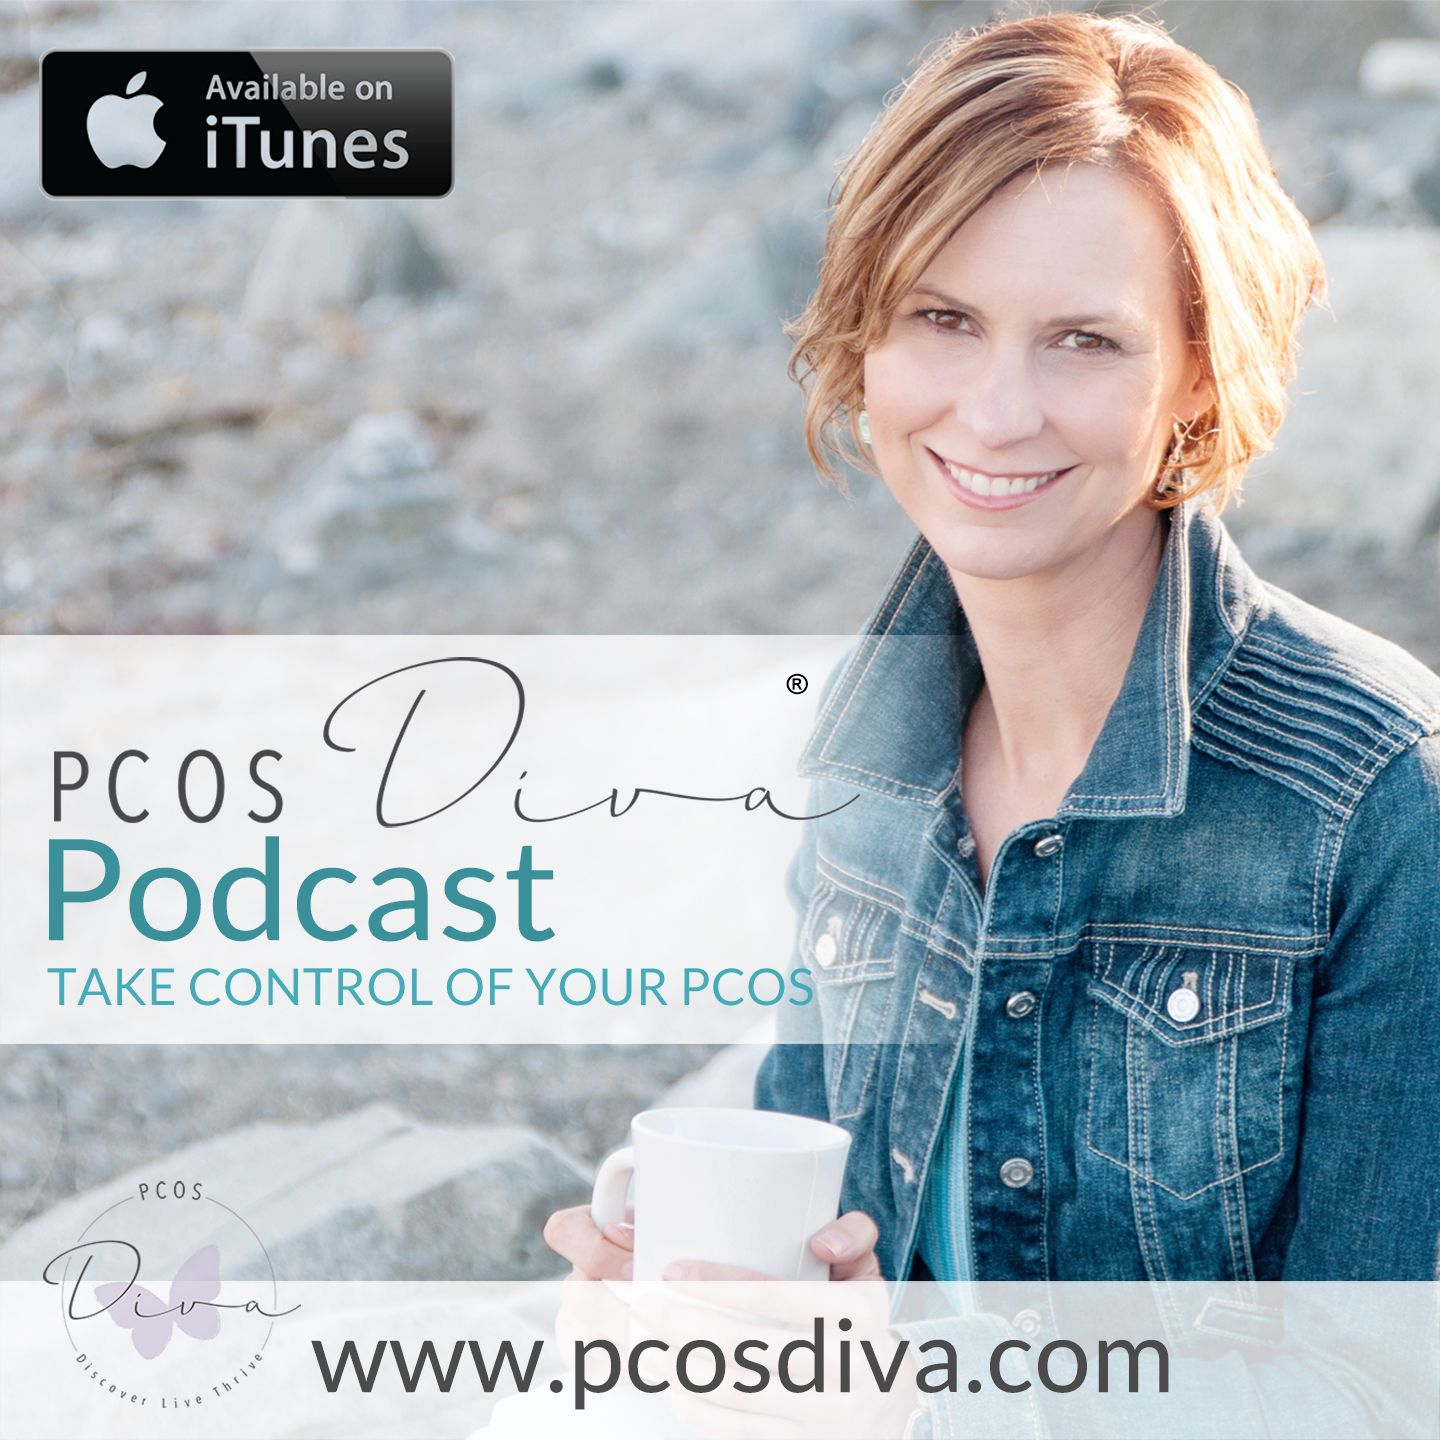 pcos podcasts 2018